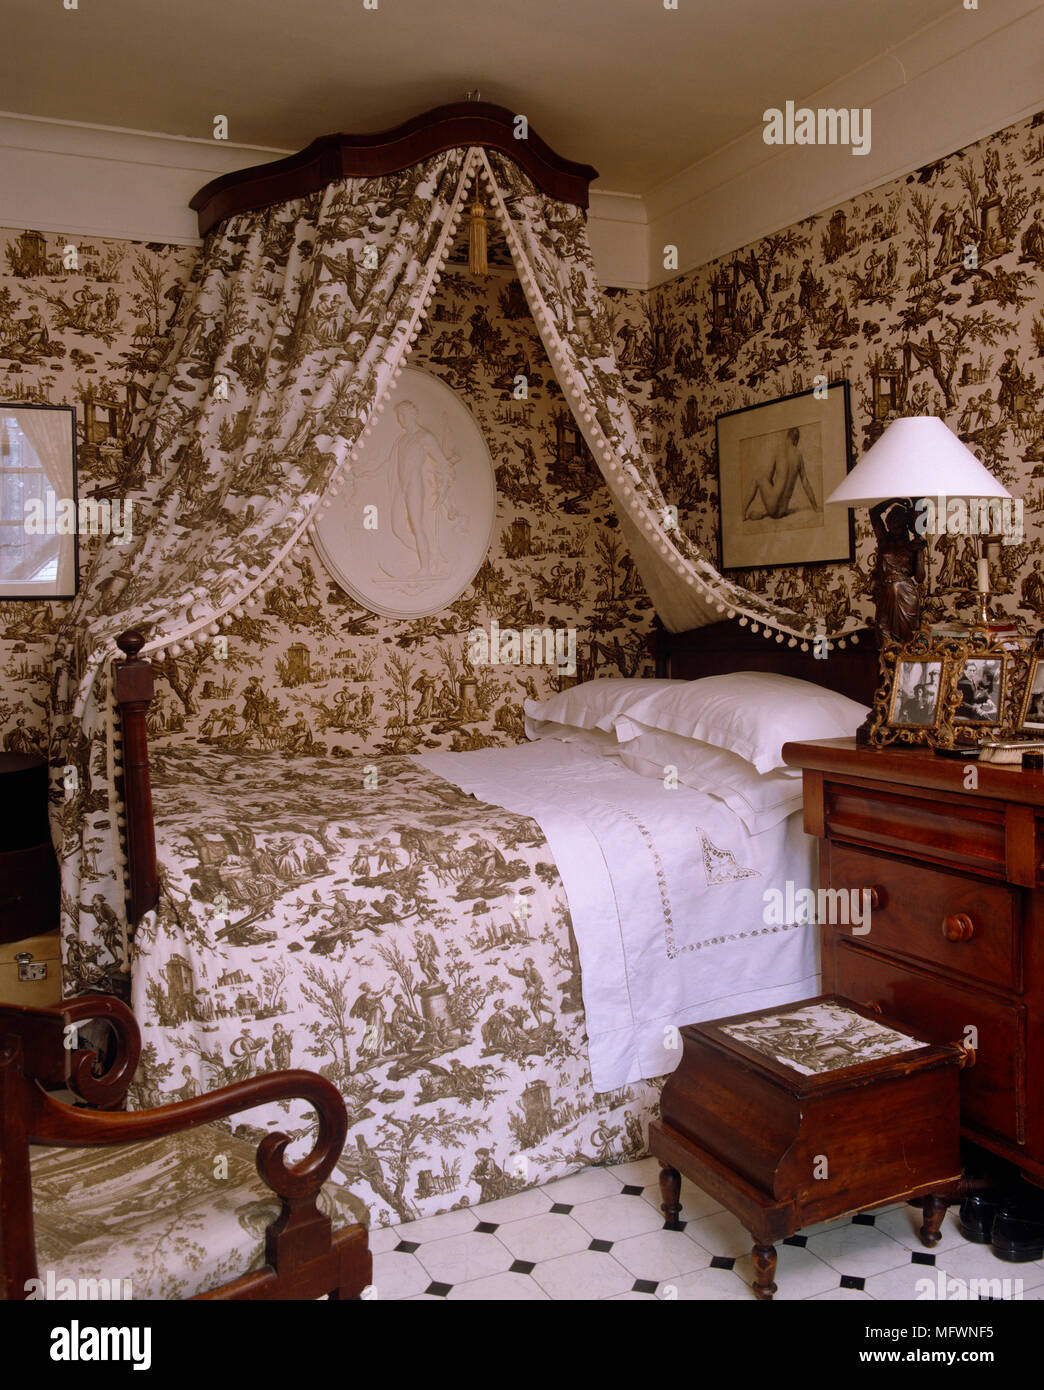 Double Bed With Canopy In Toile De Jouy Fabric And Coordinated Wallpaper